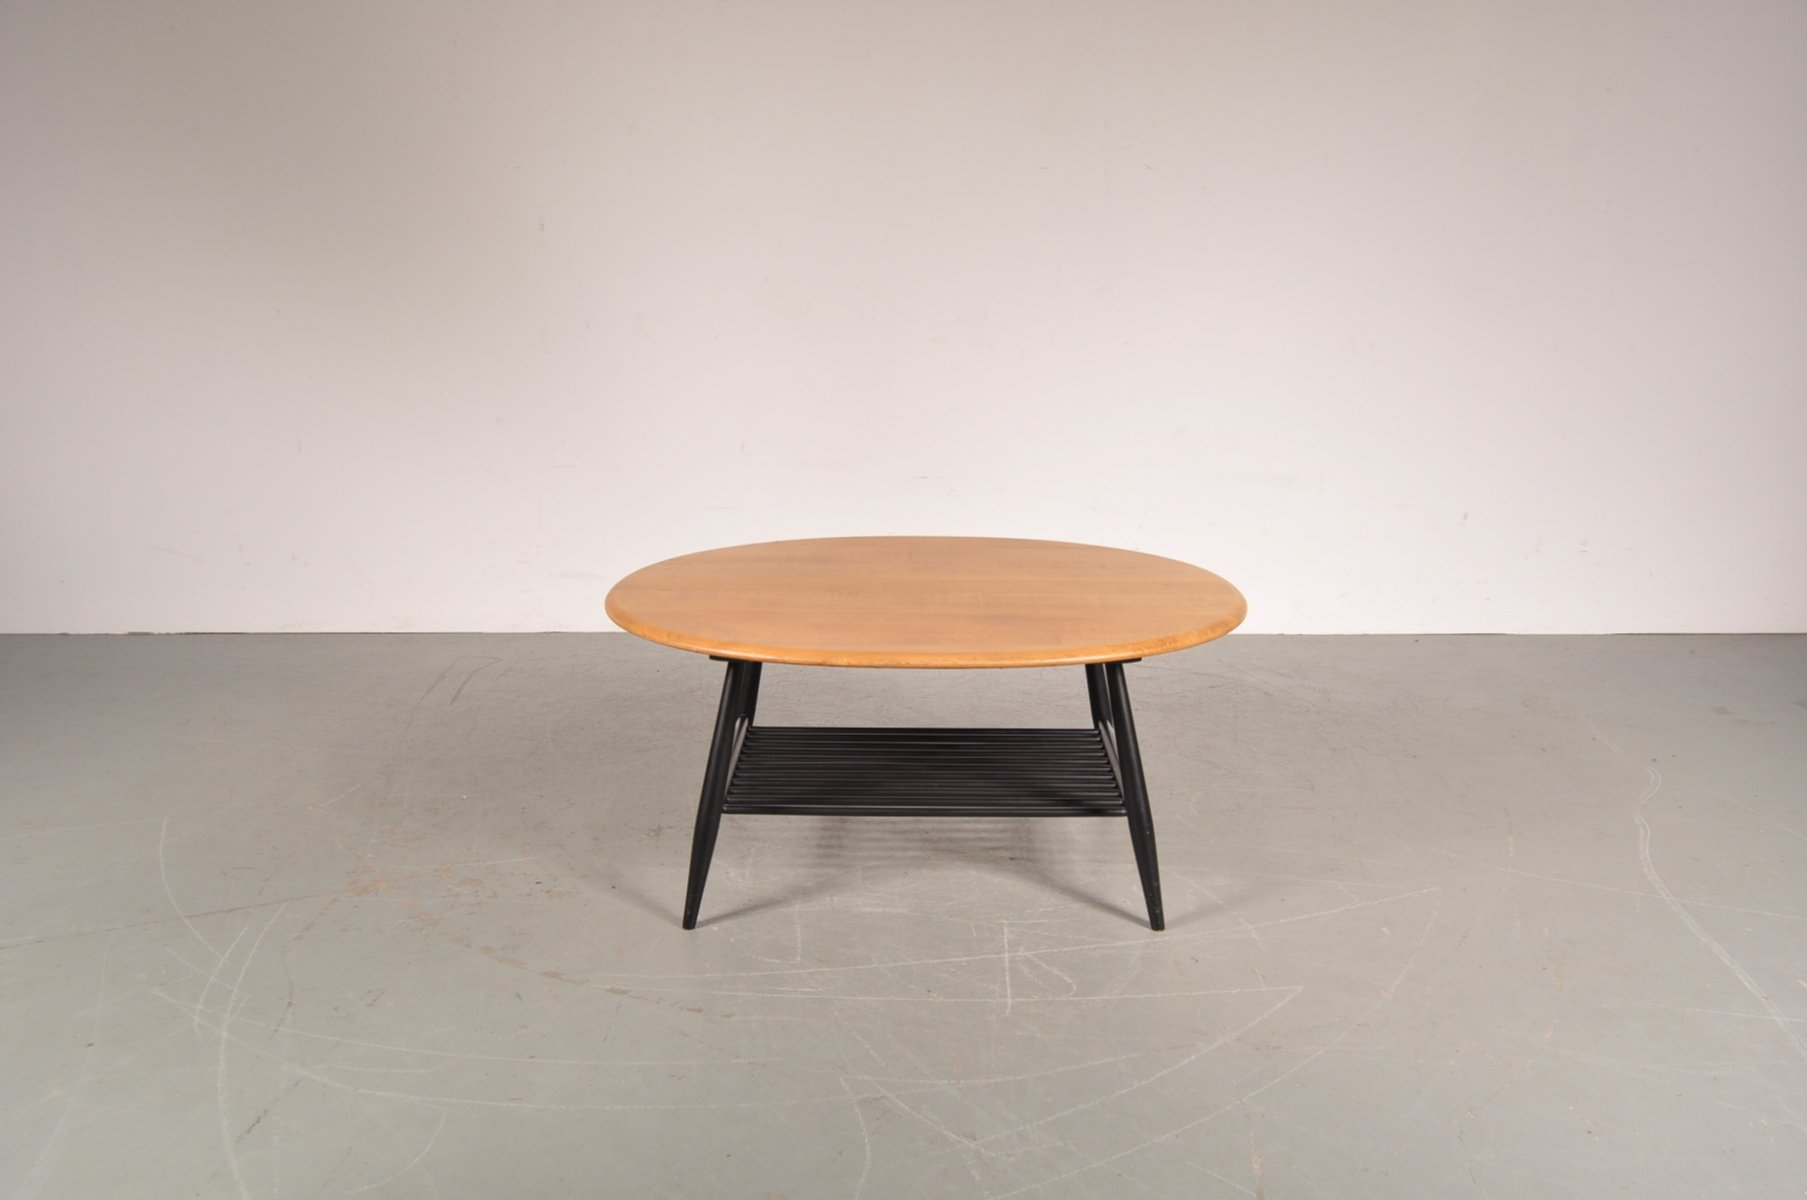 Coffee Table With Black Wooden Base By Lucian Ercolani For Ercol 1950s For Sale At Pamono